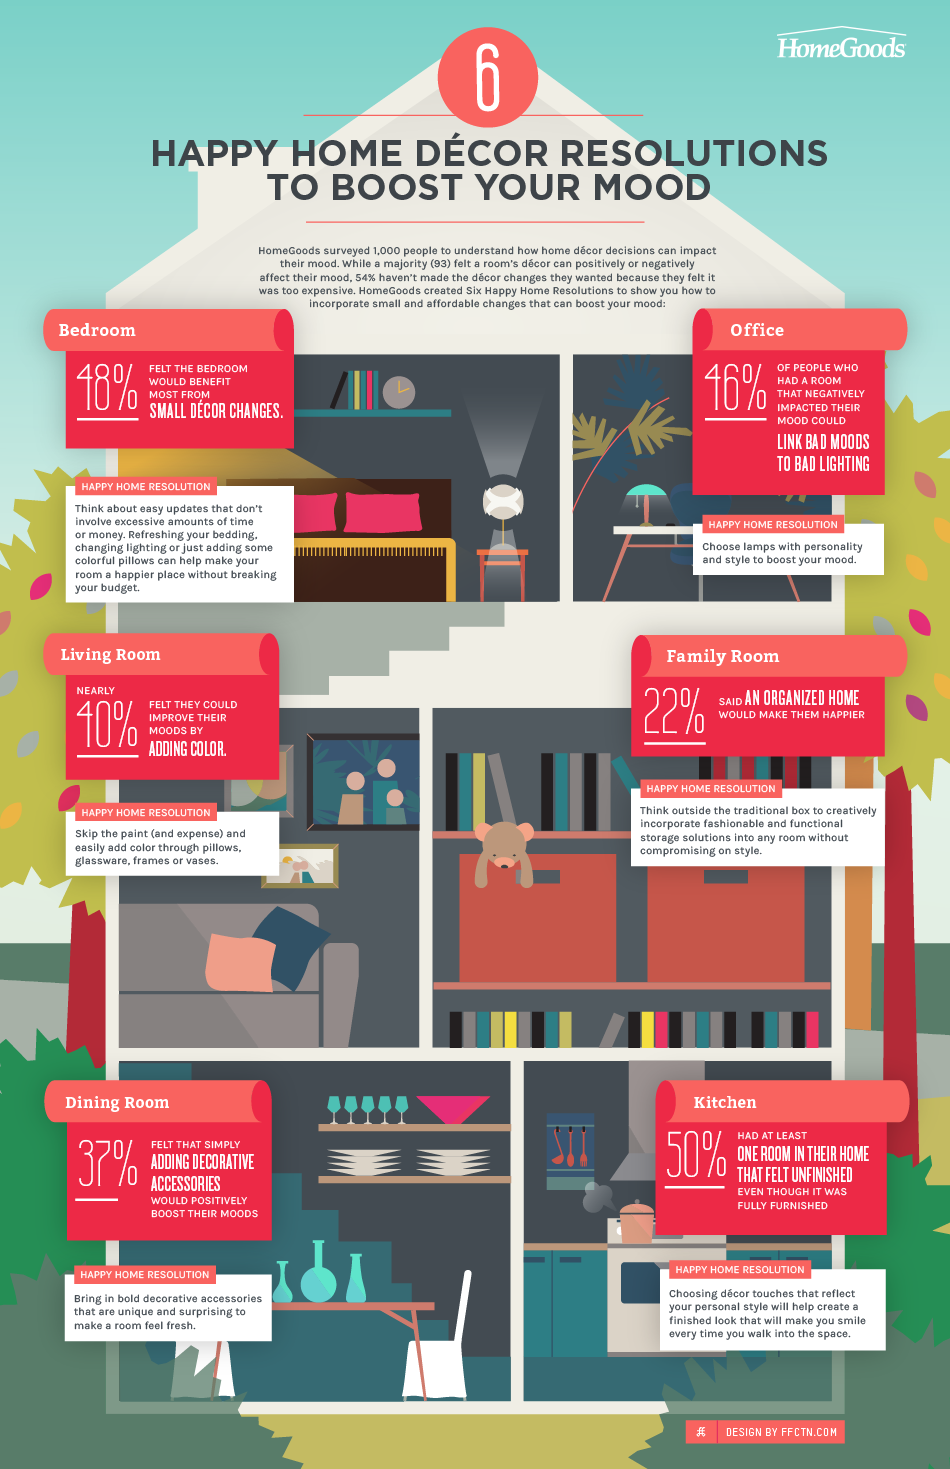 Infographic: 6 Happy Home Decor Resolutions to Boost Your Mood